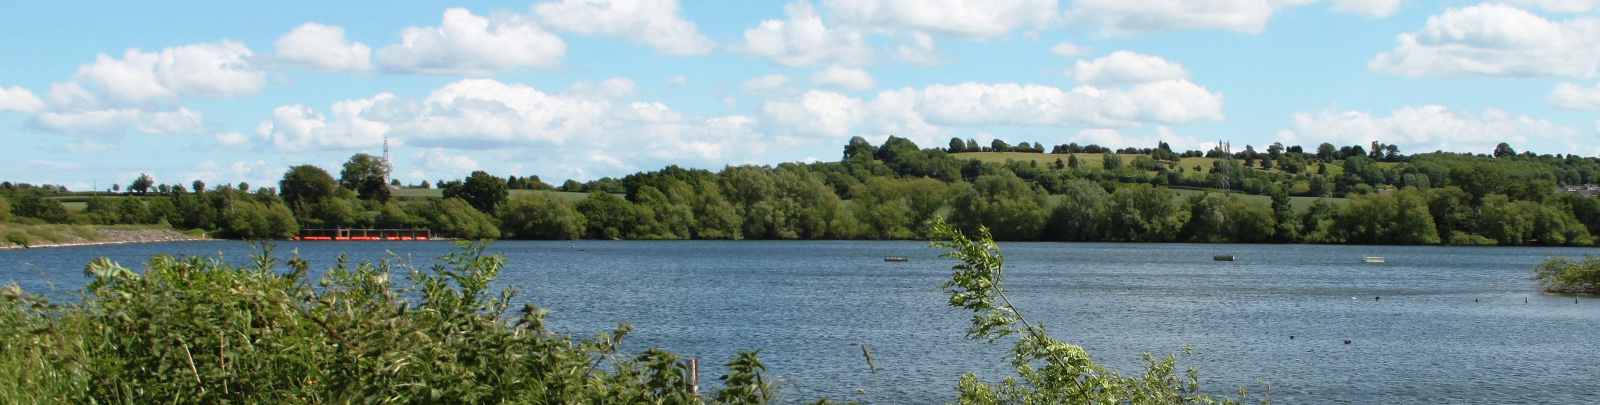 visit banner daventry country park